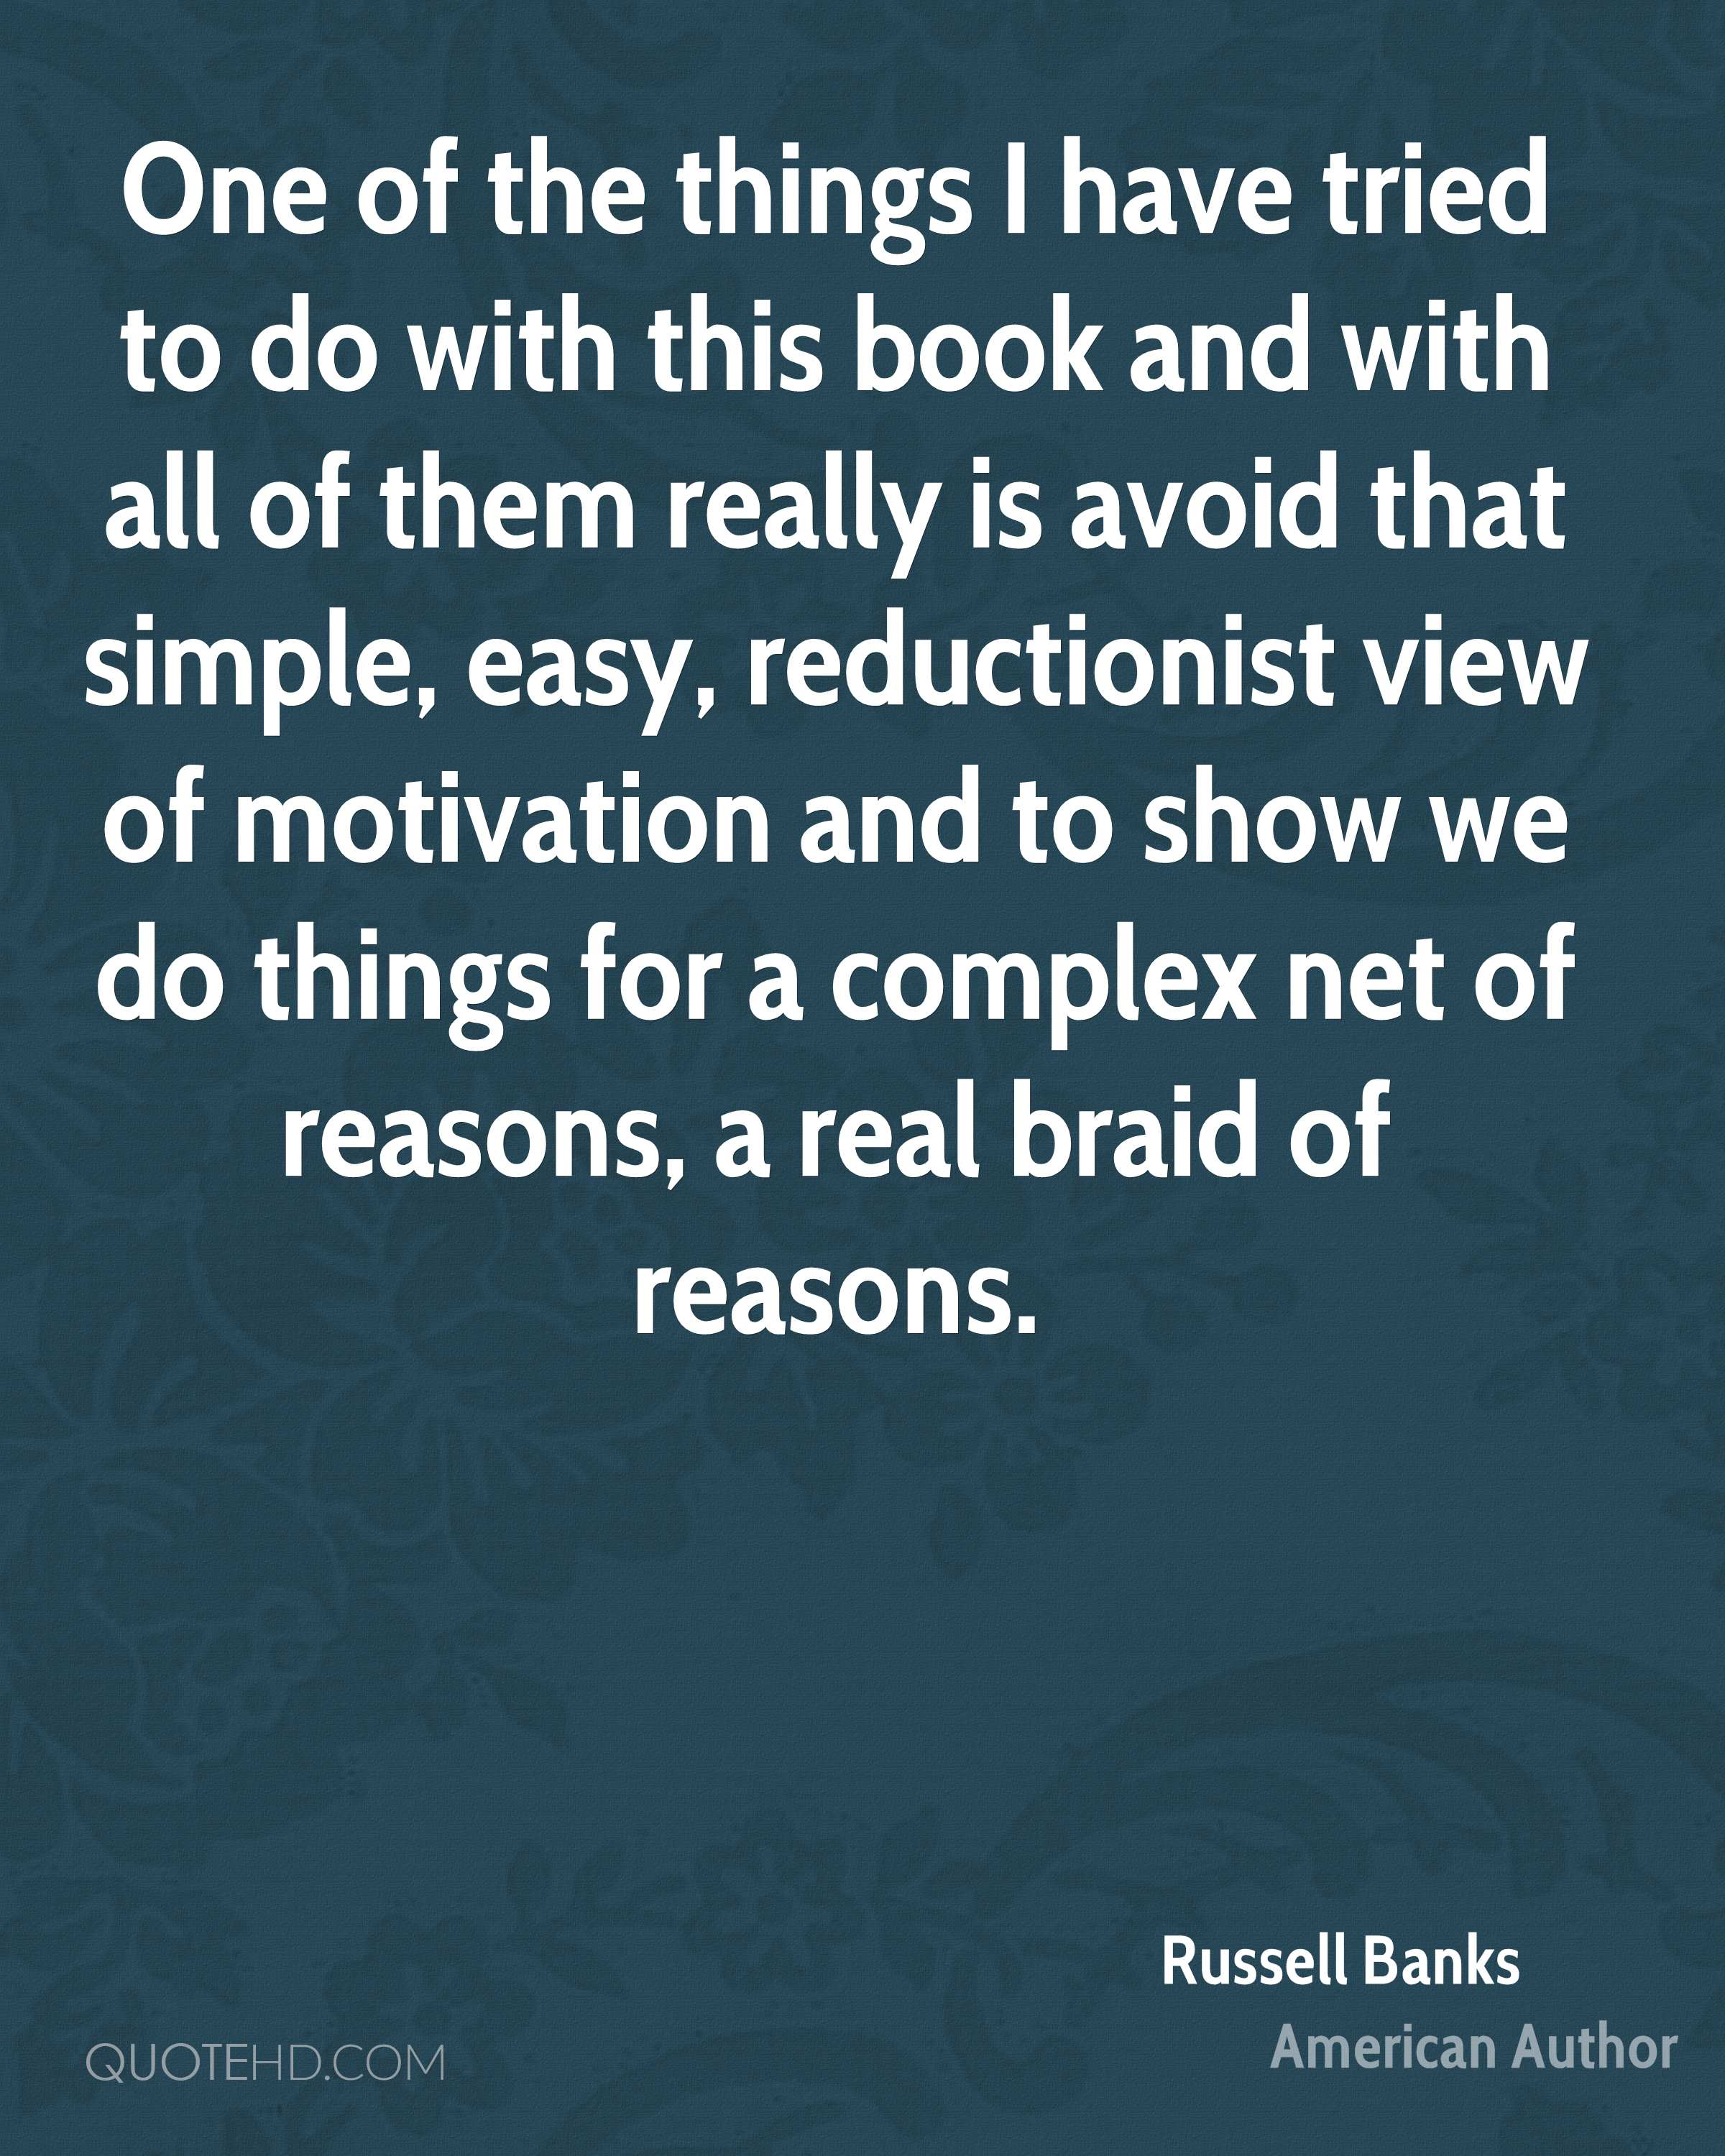 One of the things I have tried to do with this book and with all of them really is avoid that simple, easy, reductionist view of motivation and to show we do things for a complex net of reasons, a real braid of reasons.